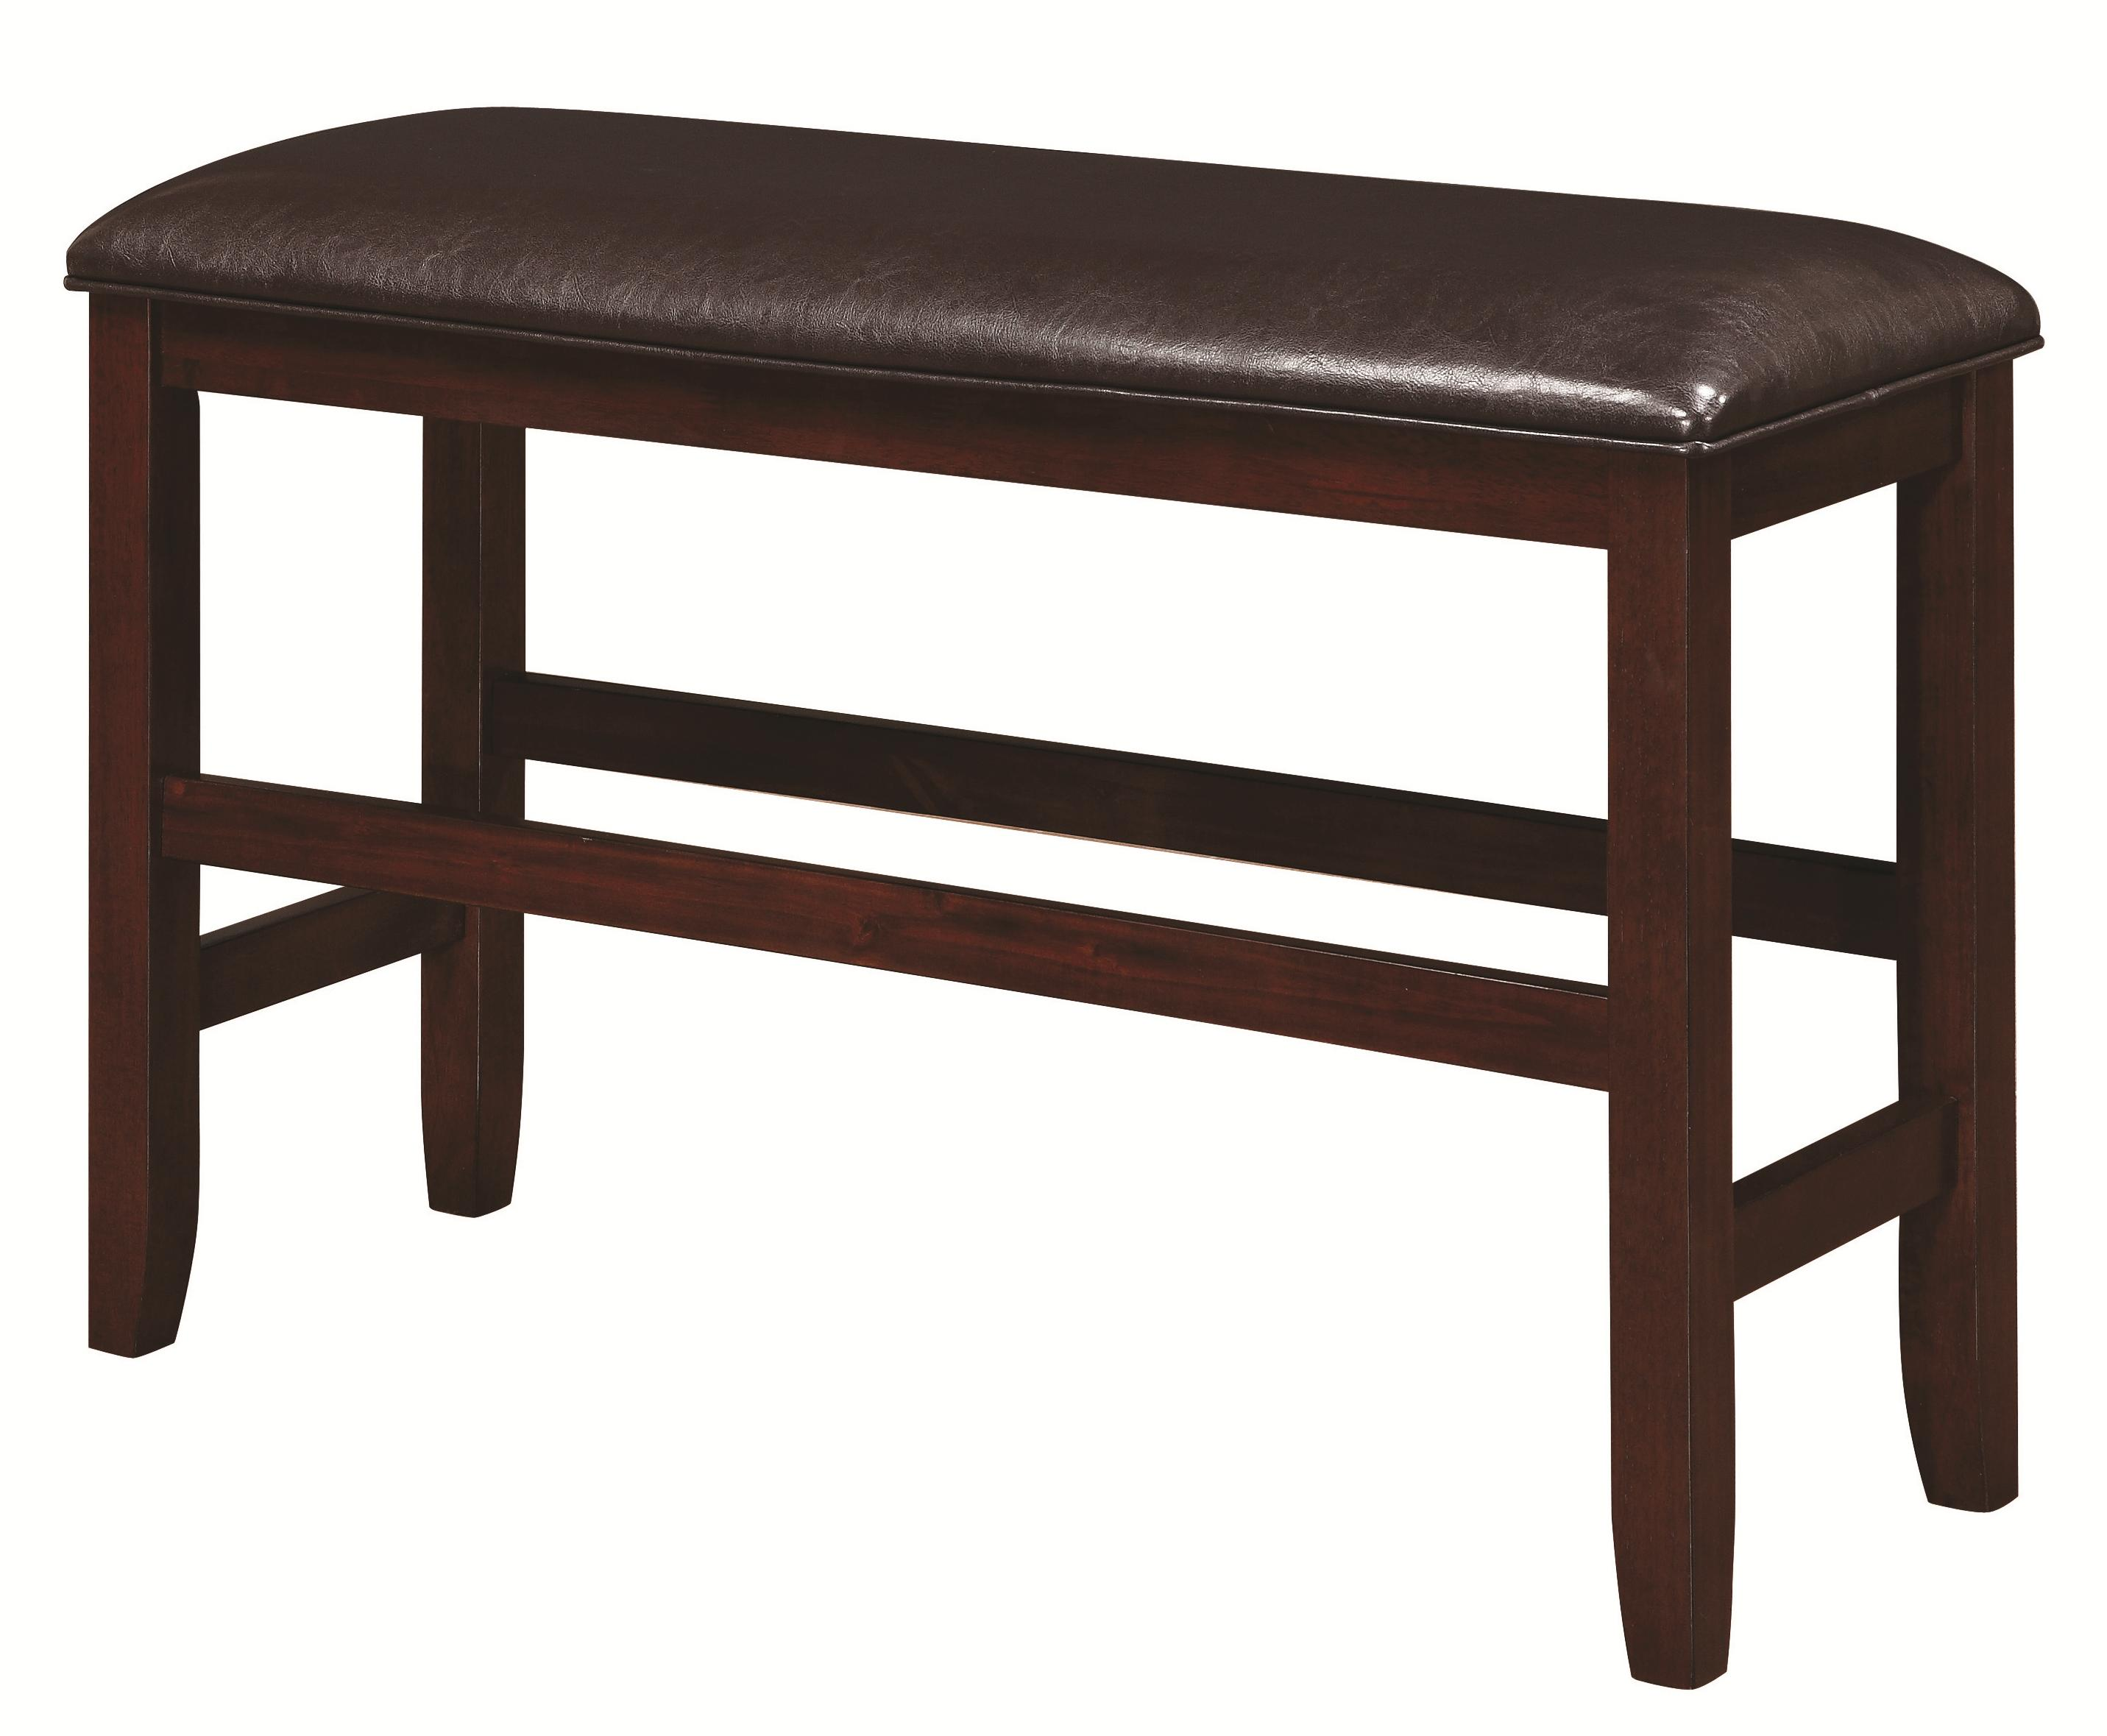 Coaster Dupree Counter Height Bench - Item Number: 105477